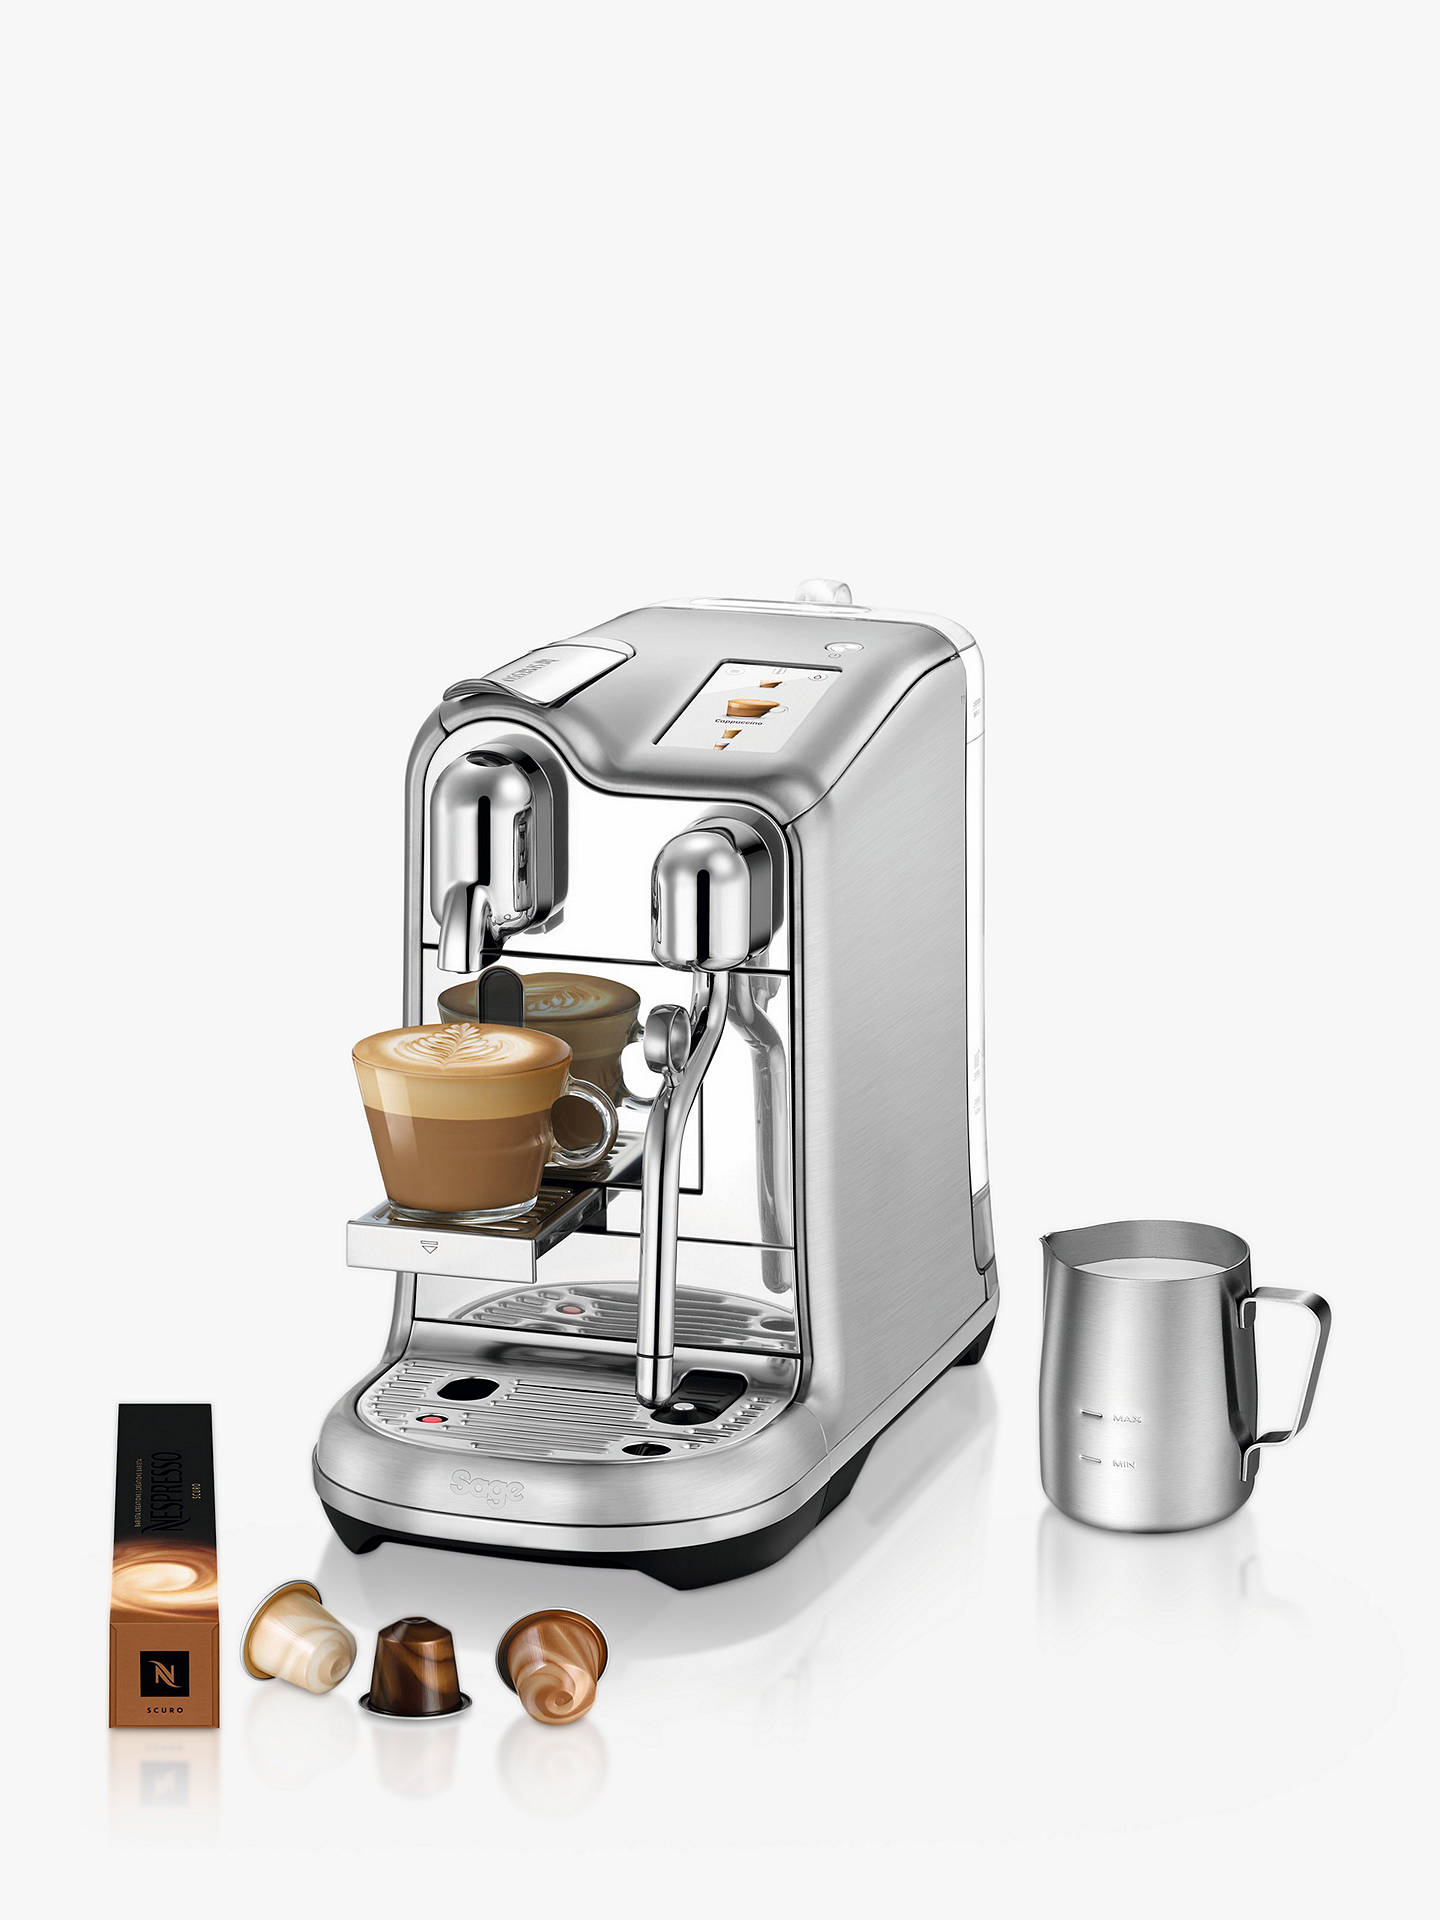 Buy Nespresso Creatista Pro SNE900BSS Coffee Machine by Sage, Stainless Steel Online at johnlewis.com